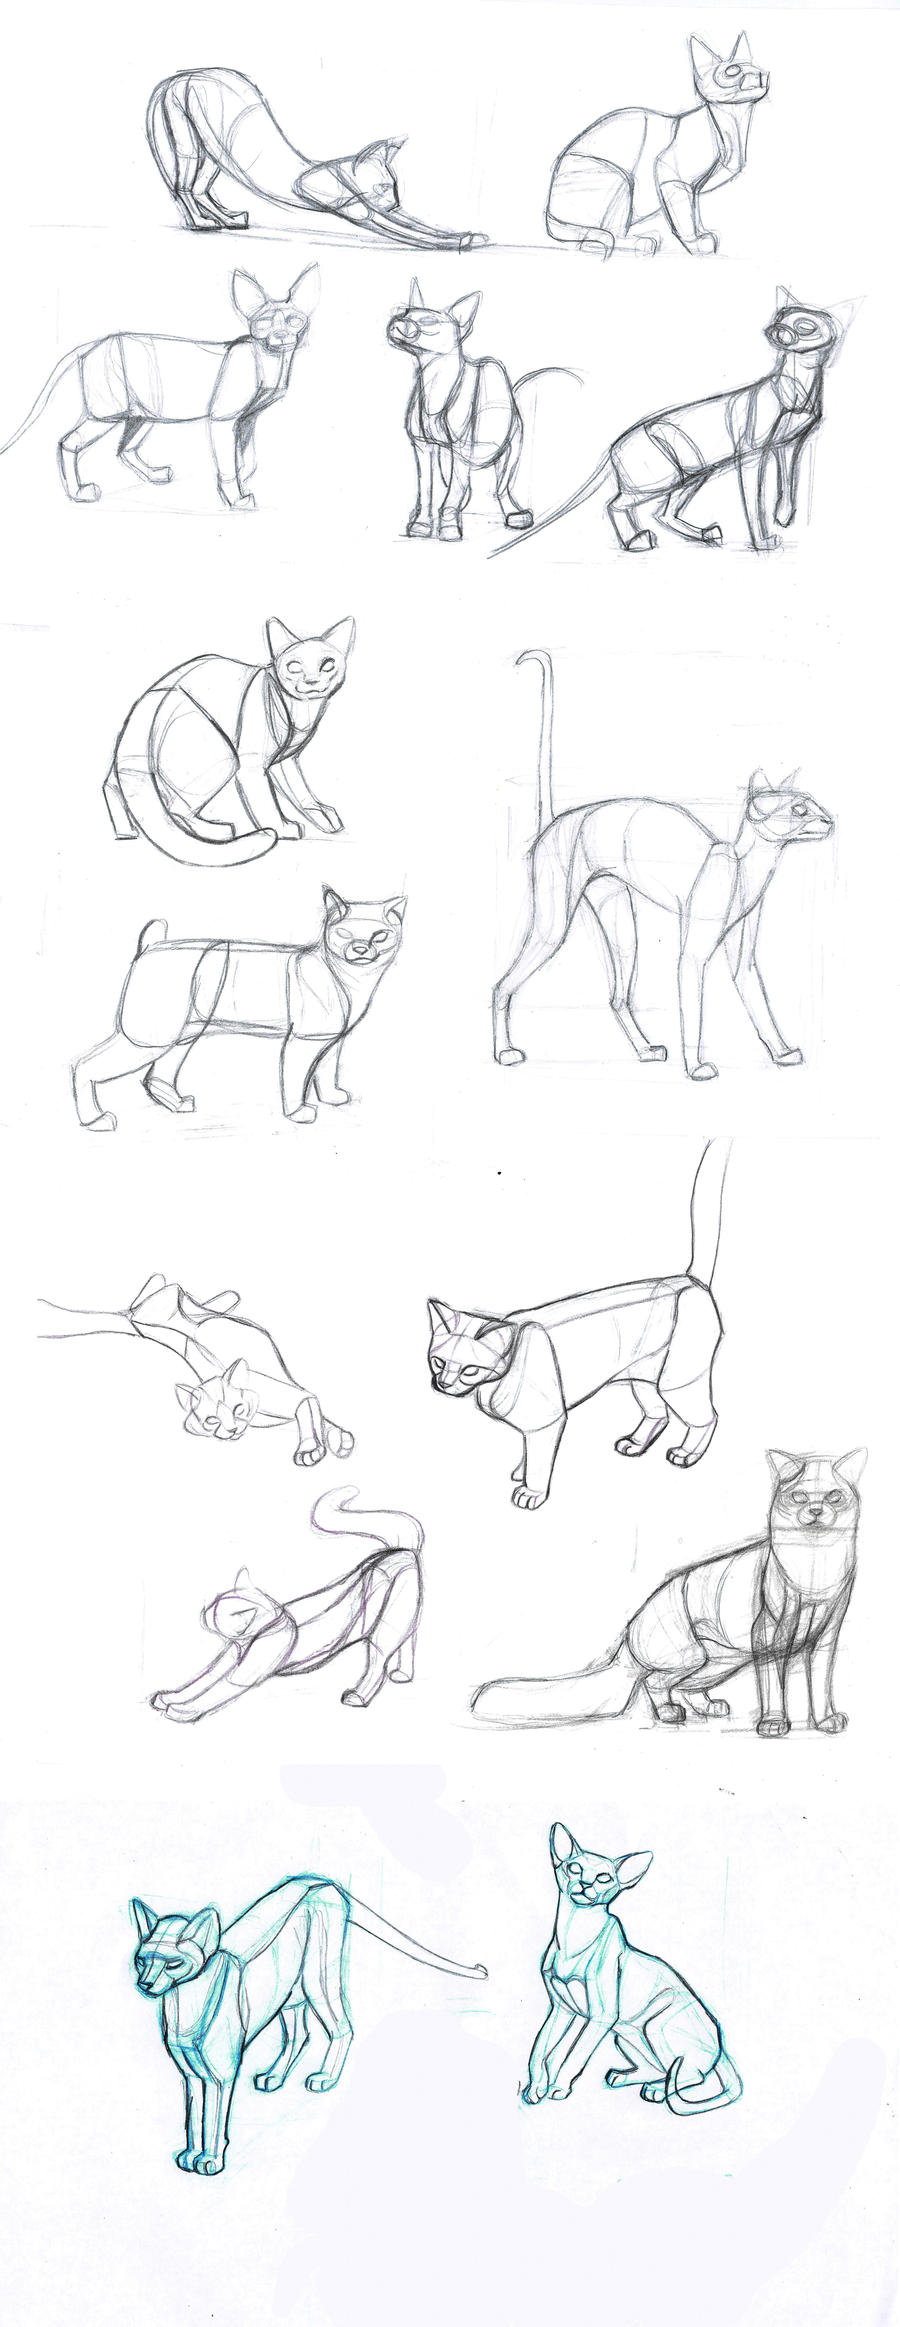 FREE Four Legged Creature Poses MORE 446662699 further Hand Exercises 171155993 additionally Cat S Body 284727567 also Anime Eyes Sad likewise Corazon. on anatomy drawing tutorial